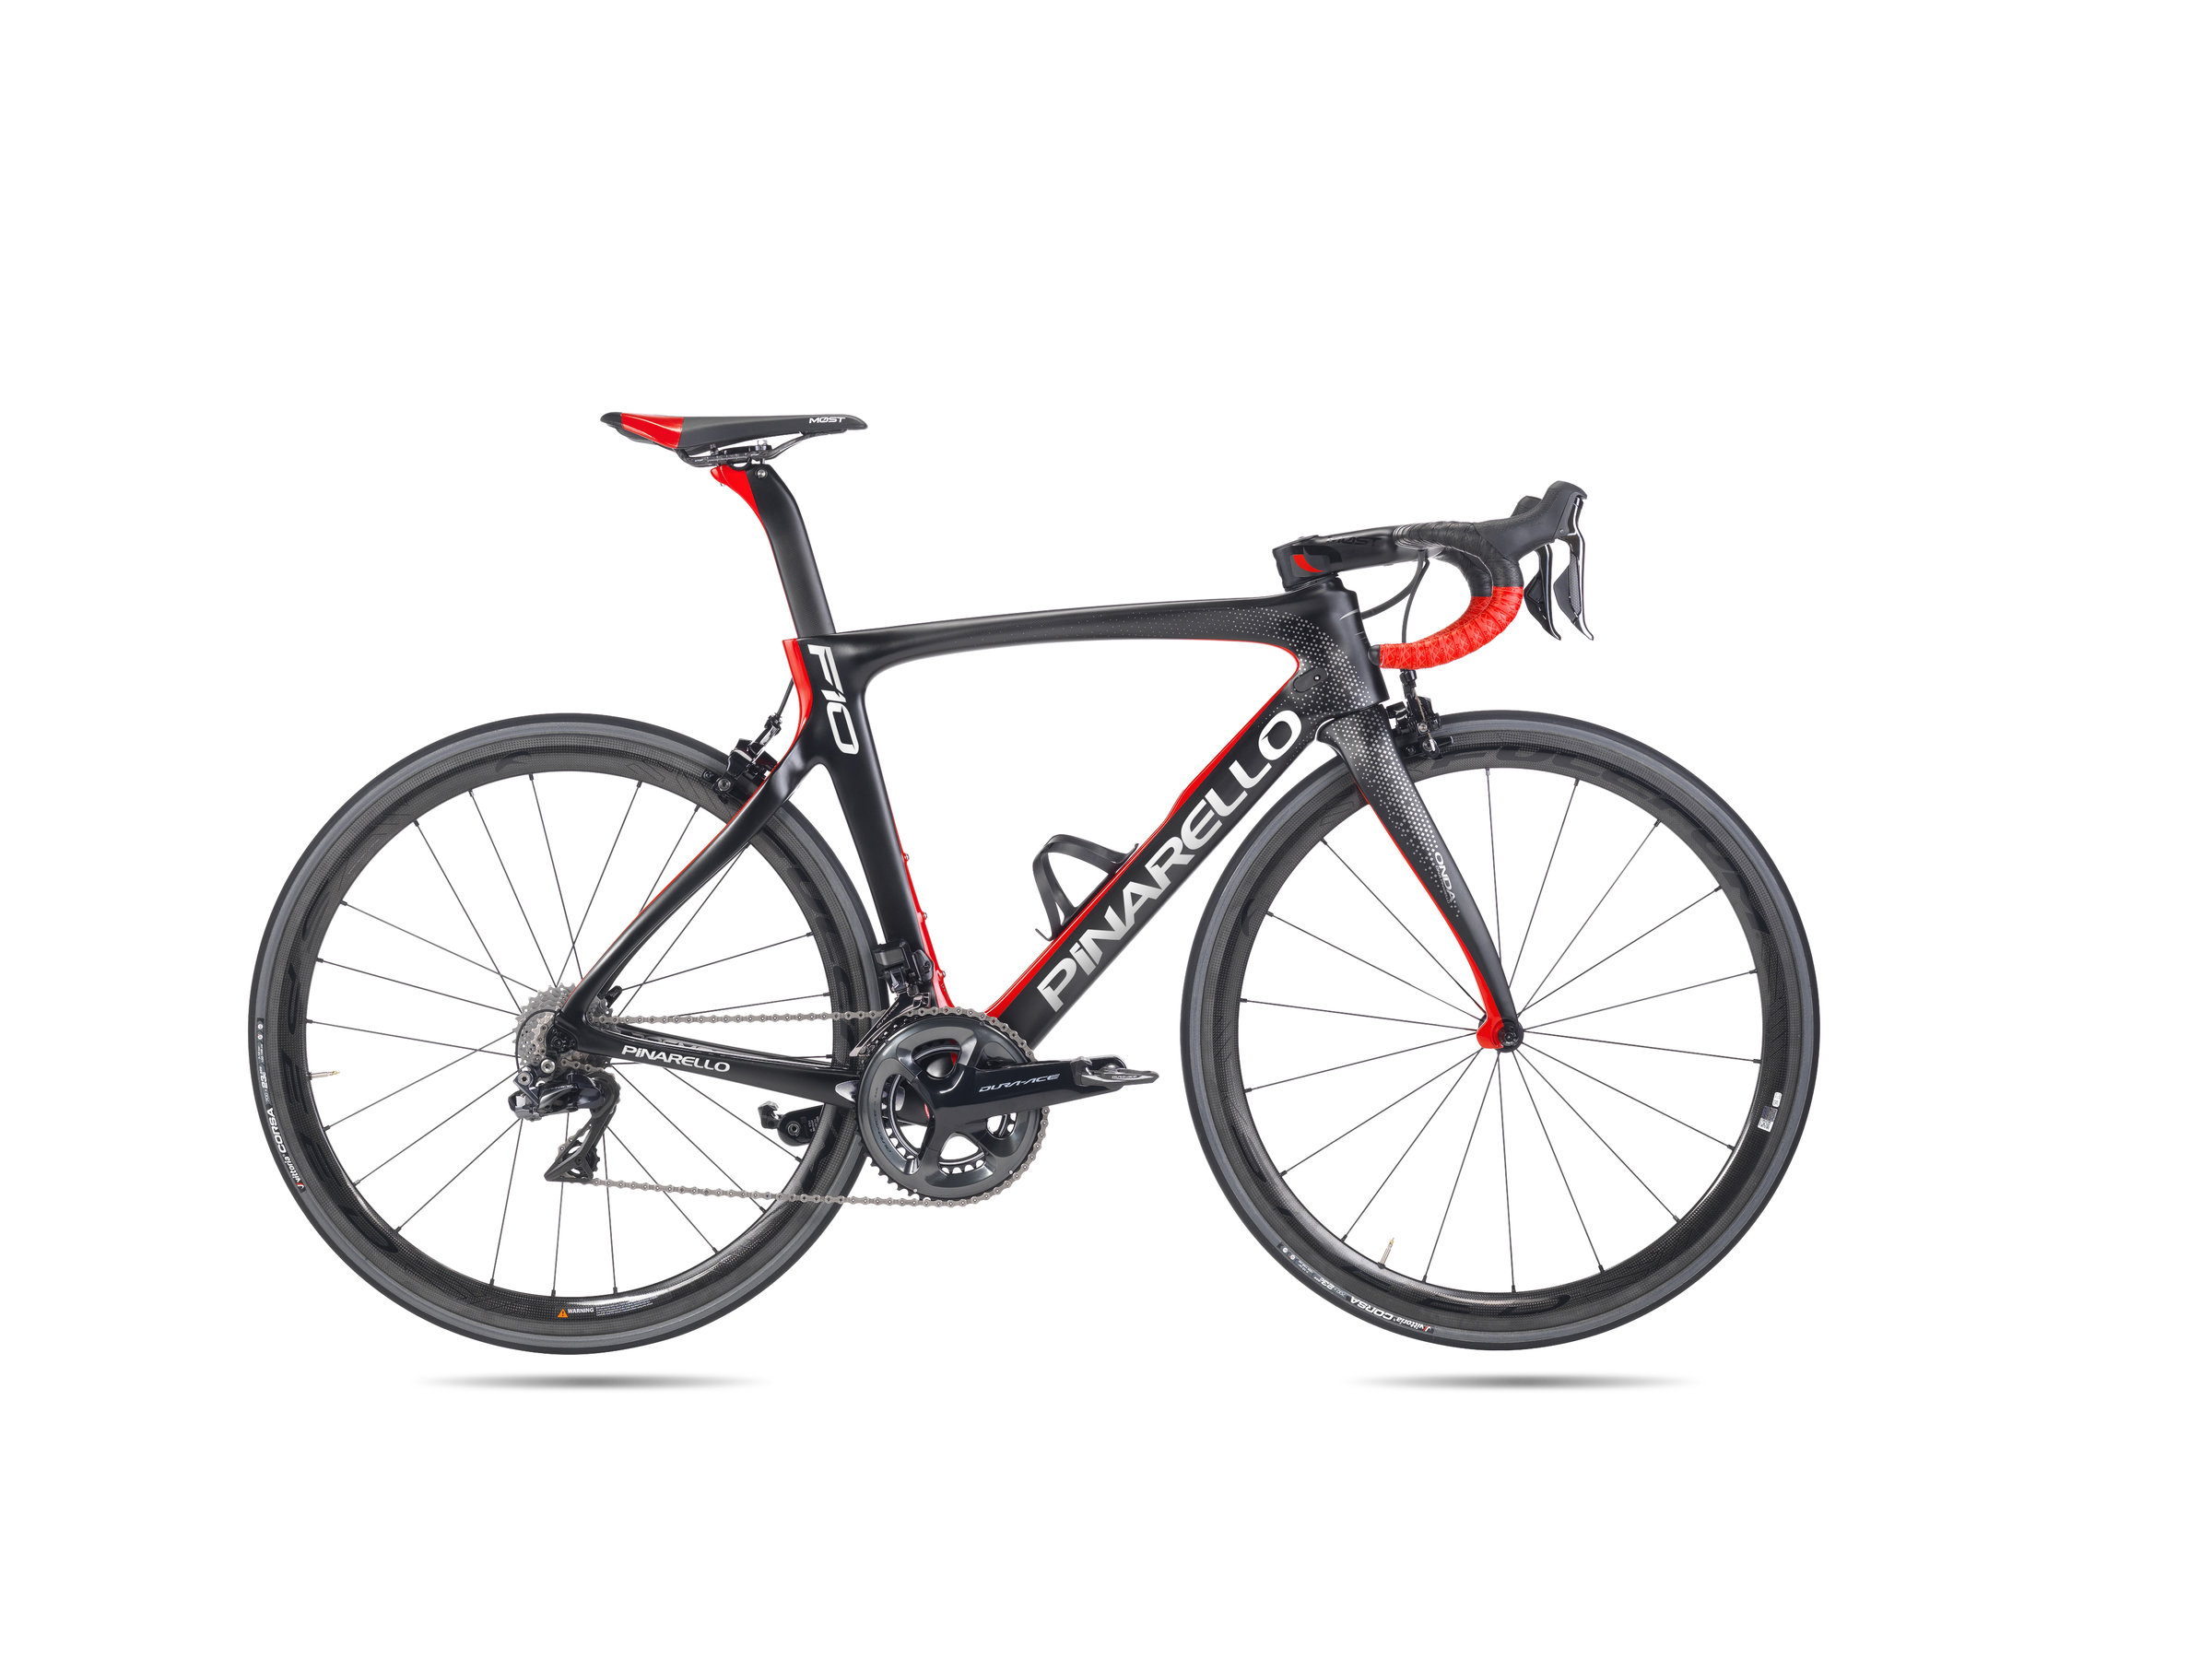 5832cbc9e91 Pinarello Dogma F10 Frame - Lakeside Bicycles Lake Oswego OR 97034  503-699-8665